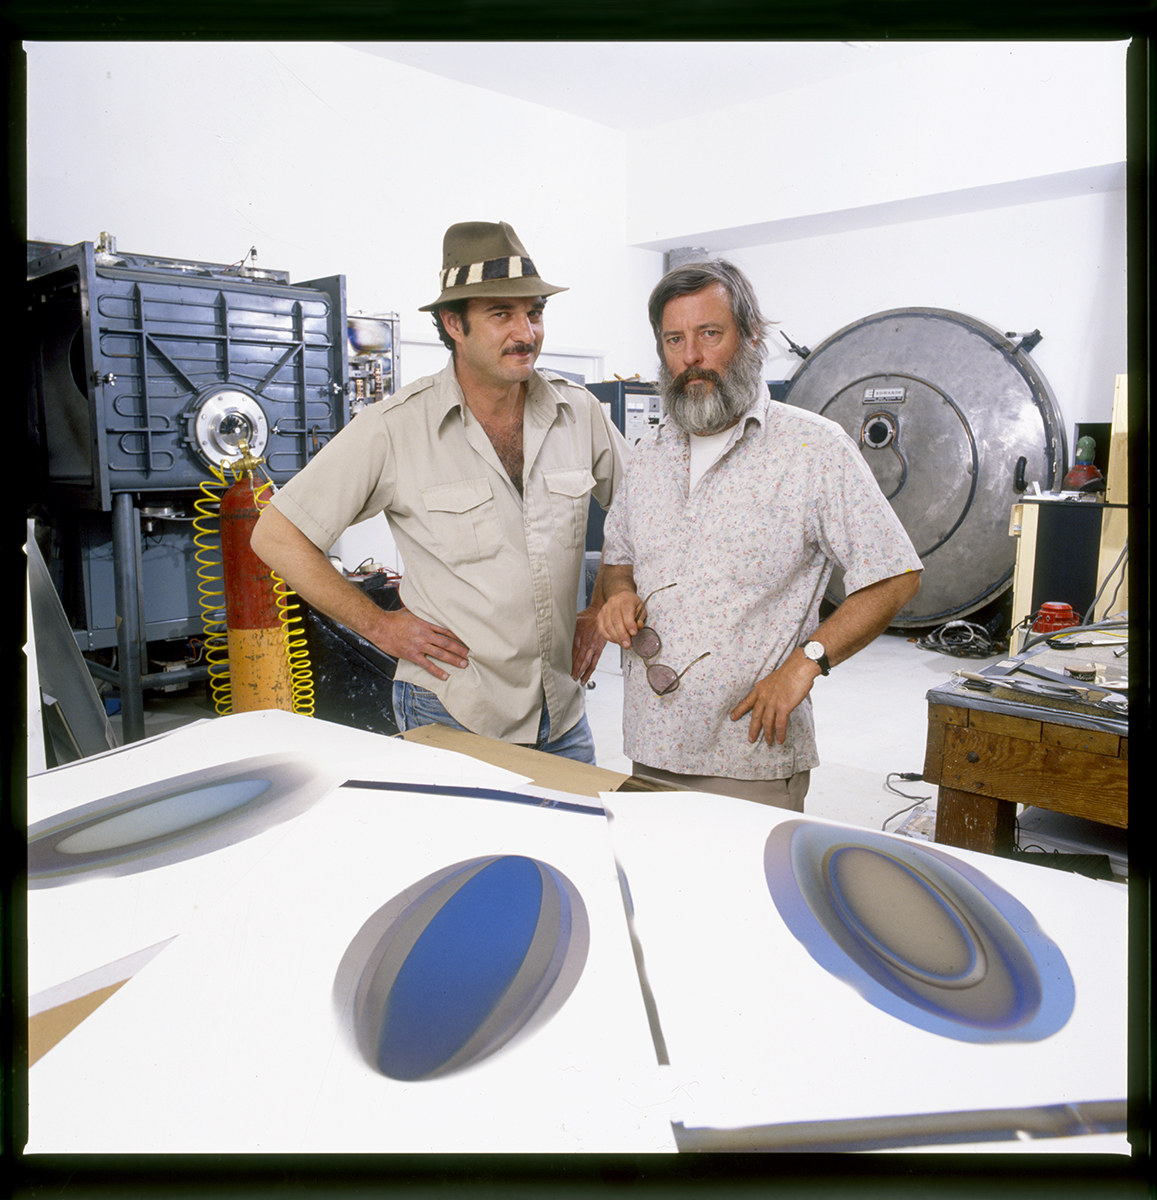 Larry Bell and Kenny Price photographed at Larry Bell's studio in Taos, New Mexico, 1993